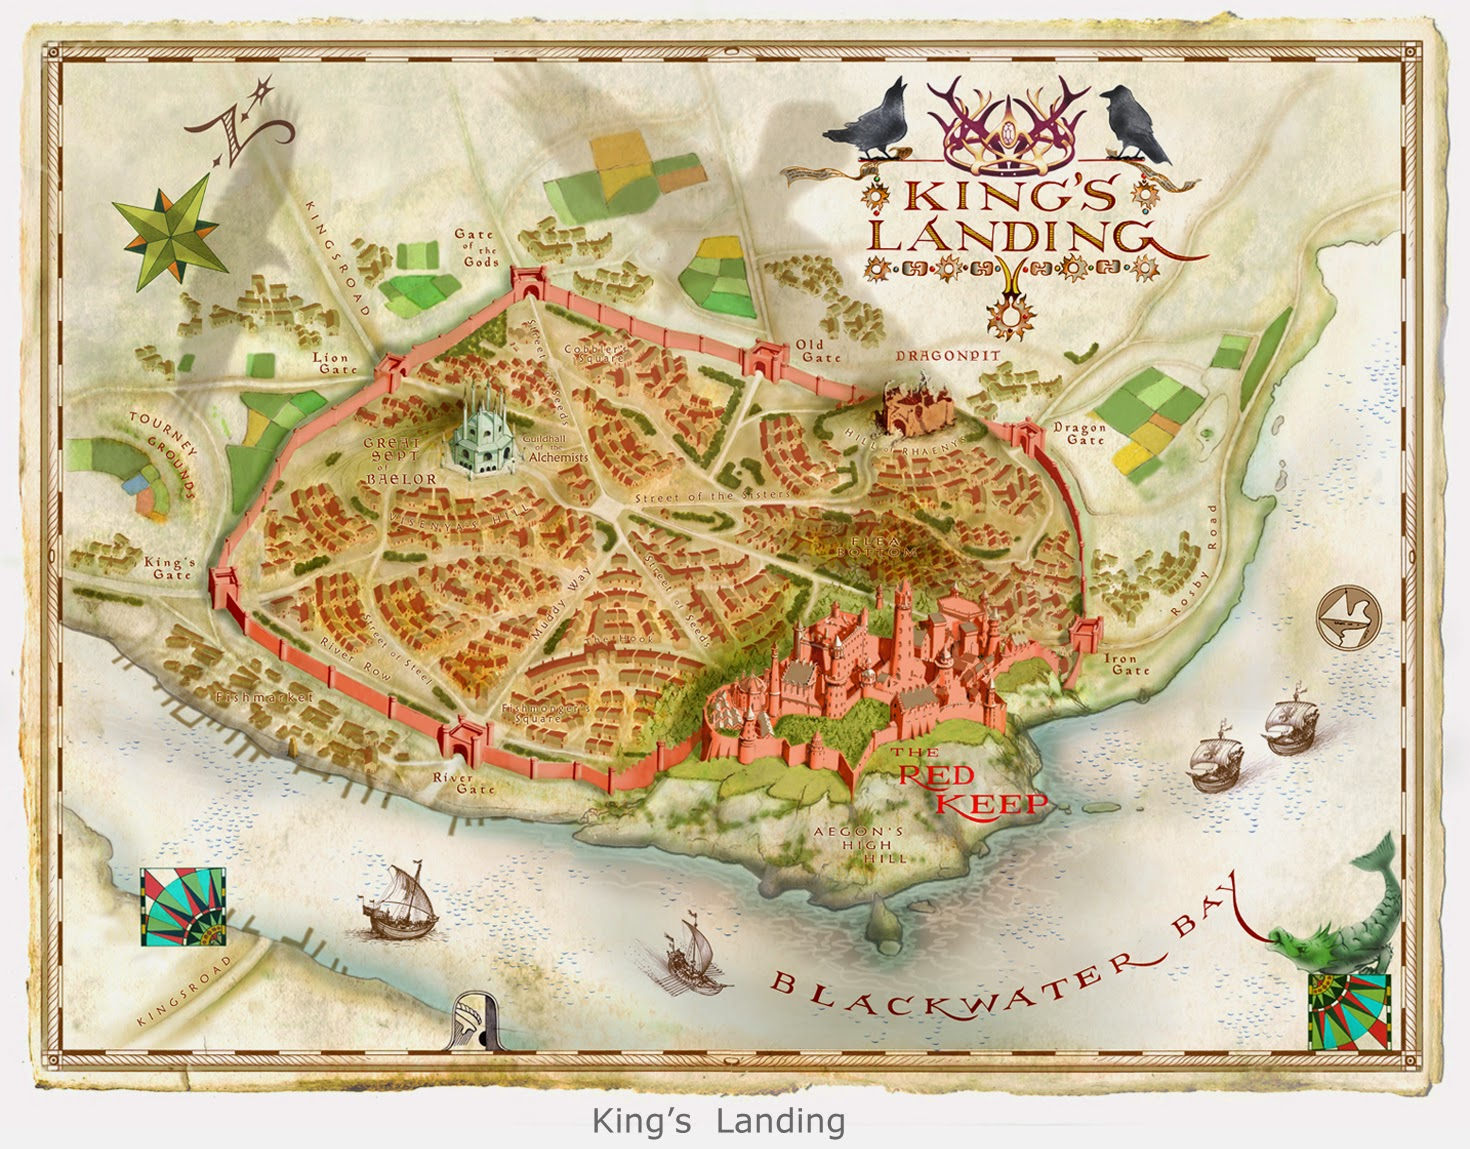 Map illustration by Michael Gellatly of the fictional land of King's Landing from George R. R. Martin's Game of Thrones